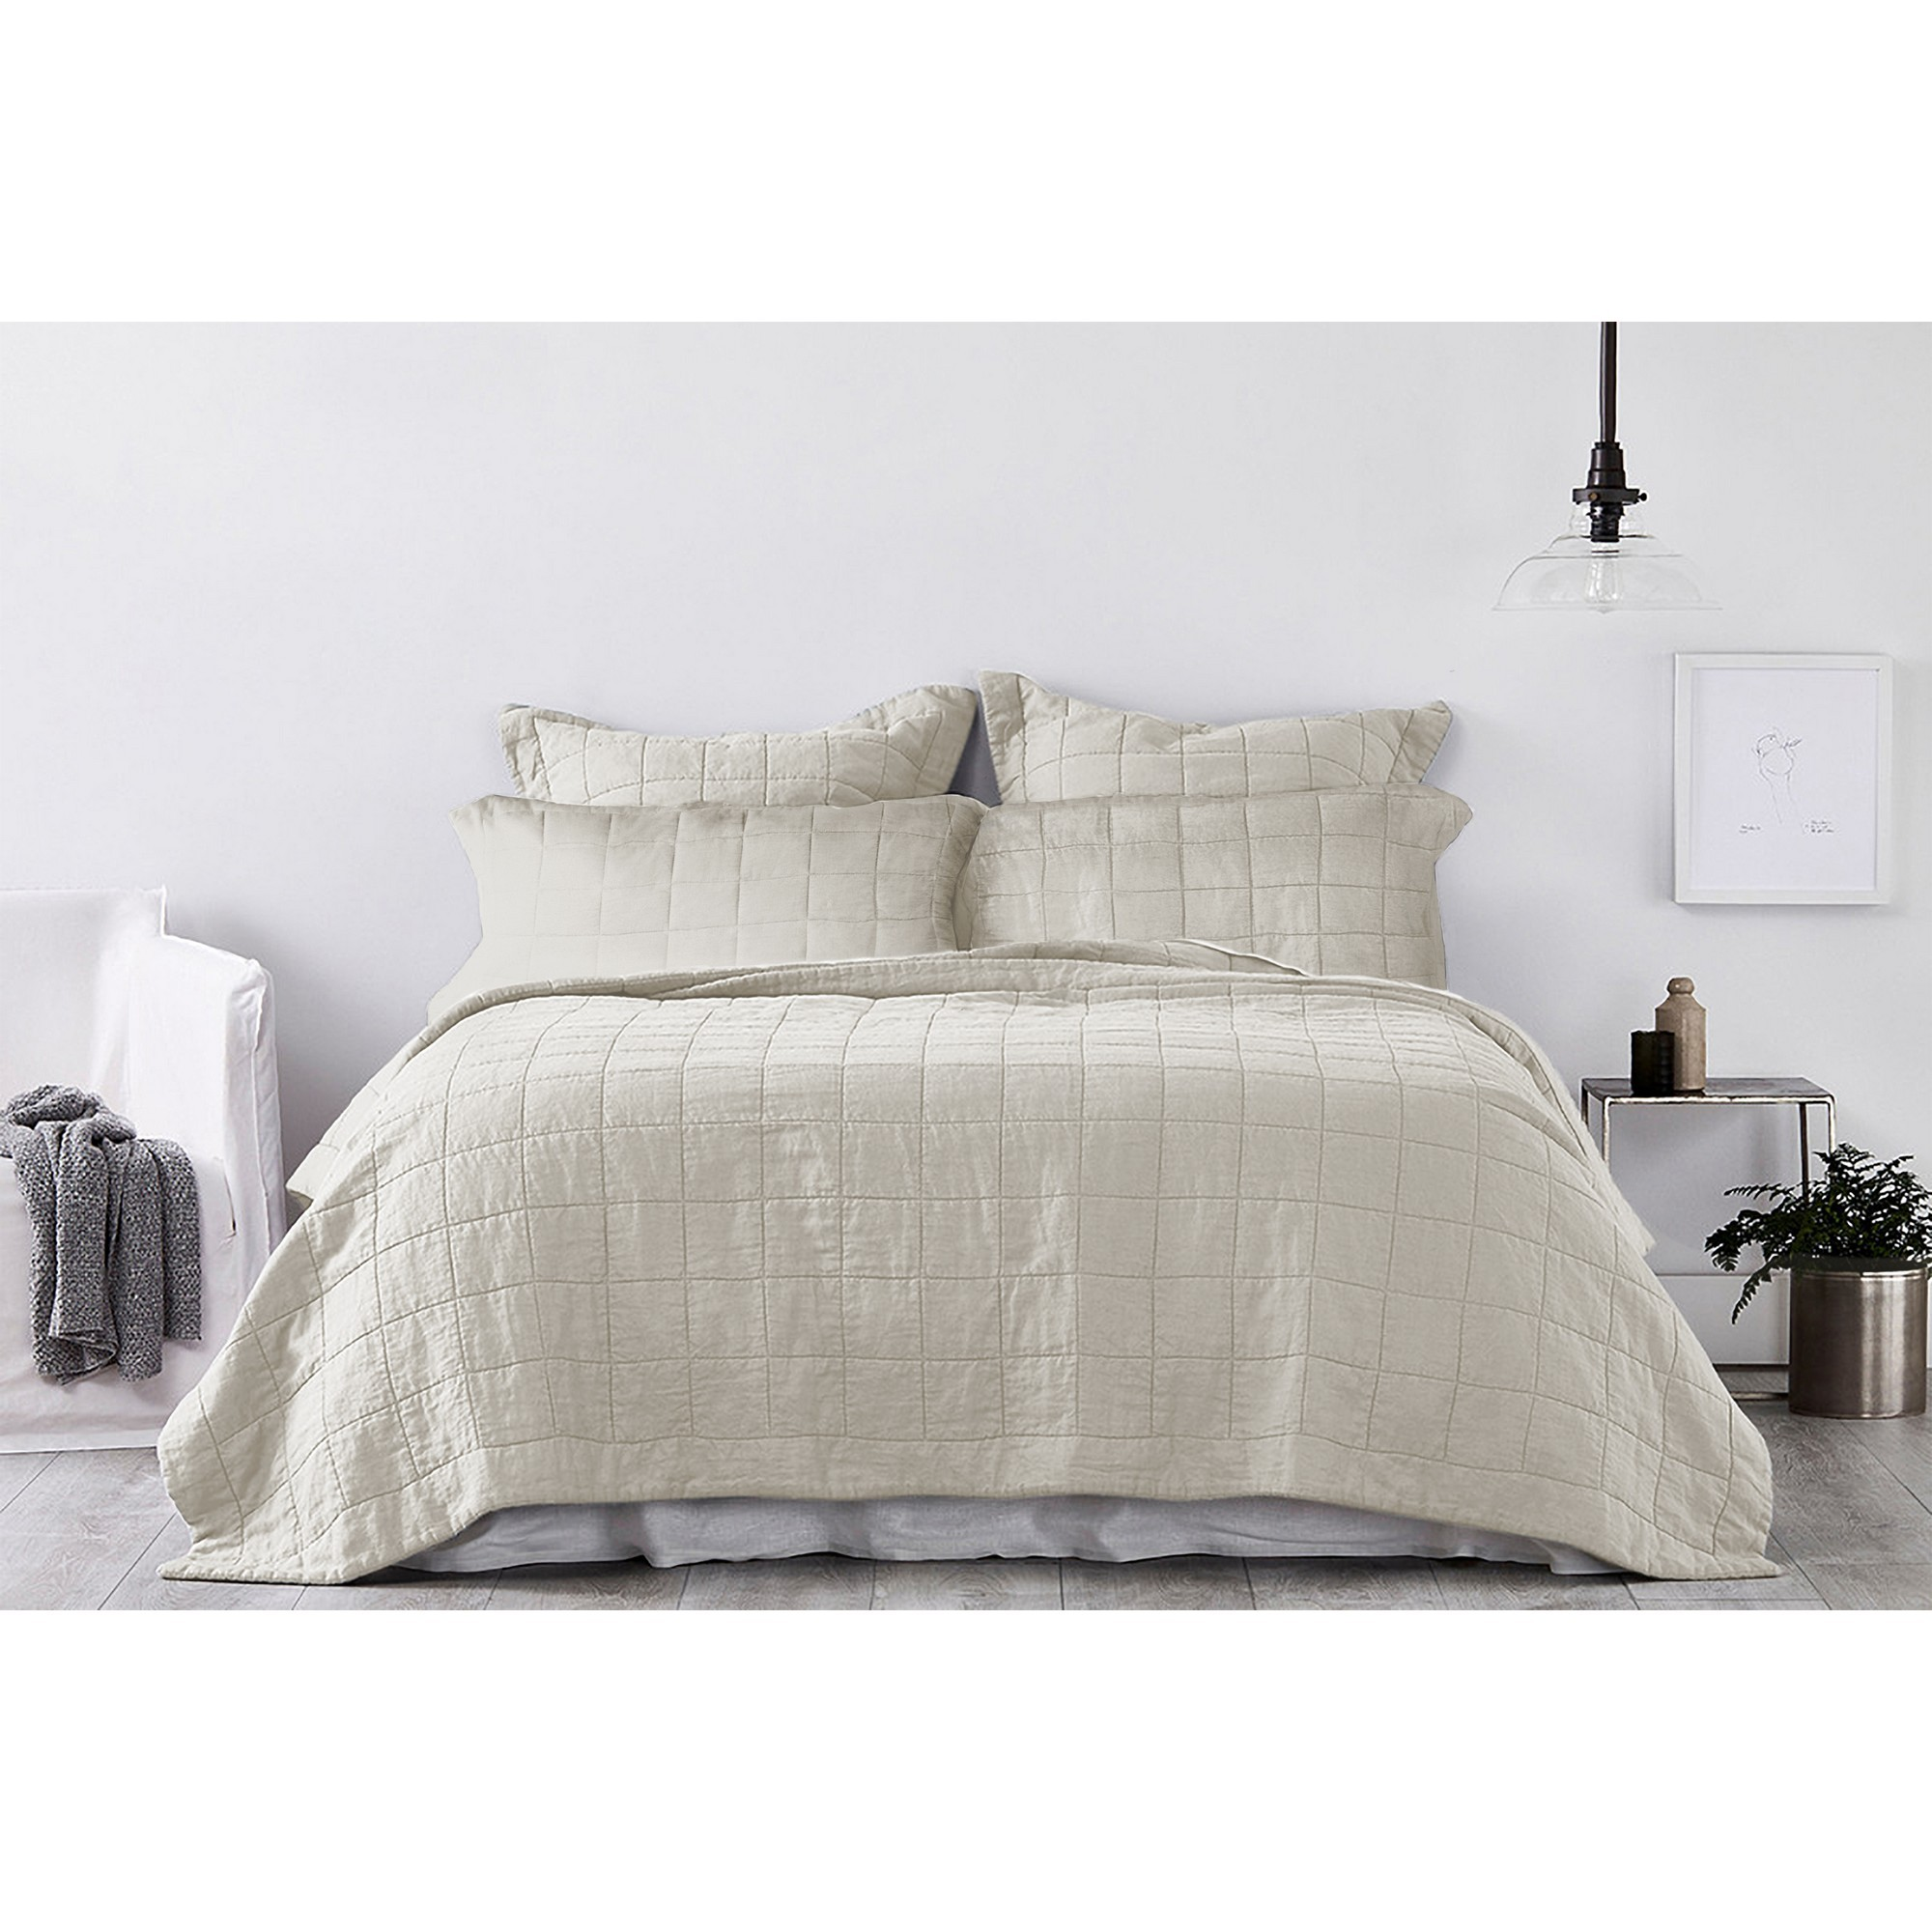 Ardor Harley Washed Cotton Coverlet Set, Quee / King, Nude